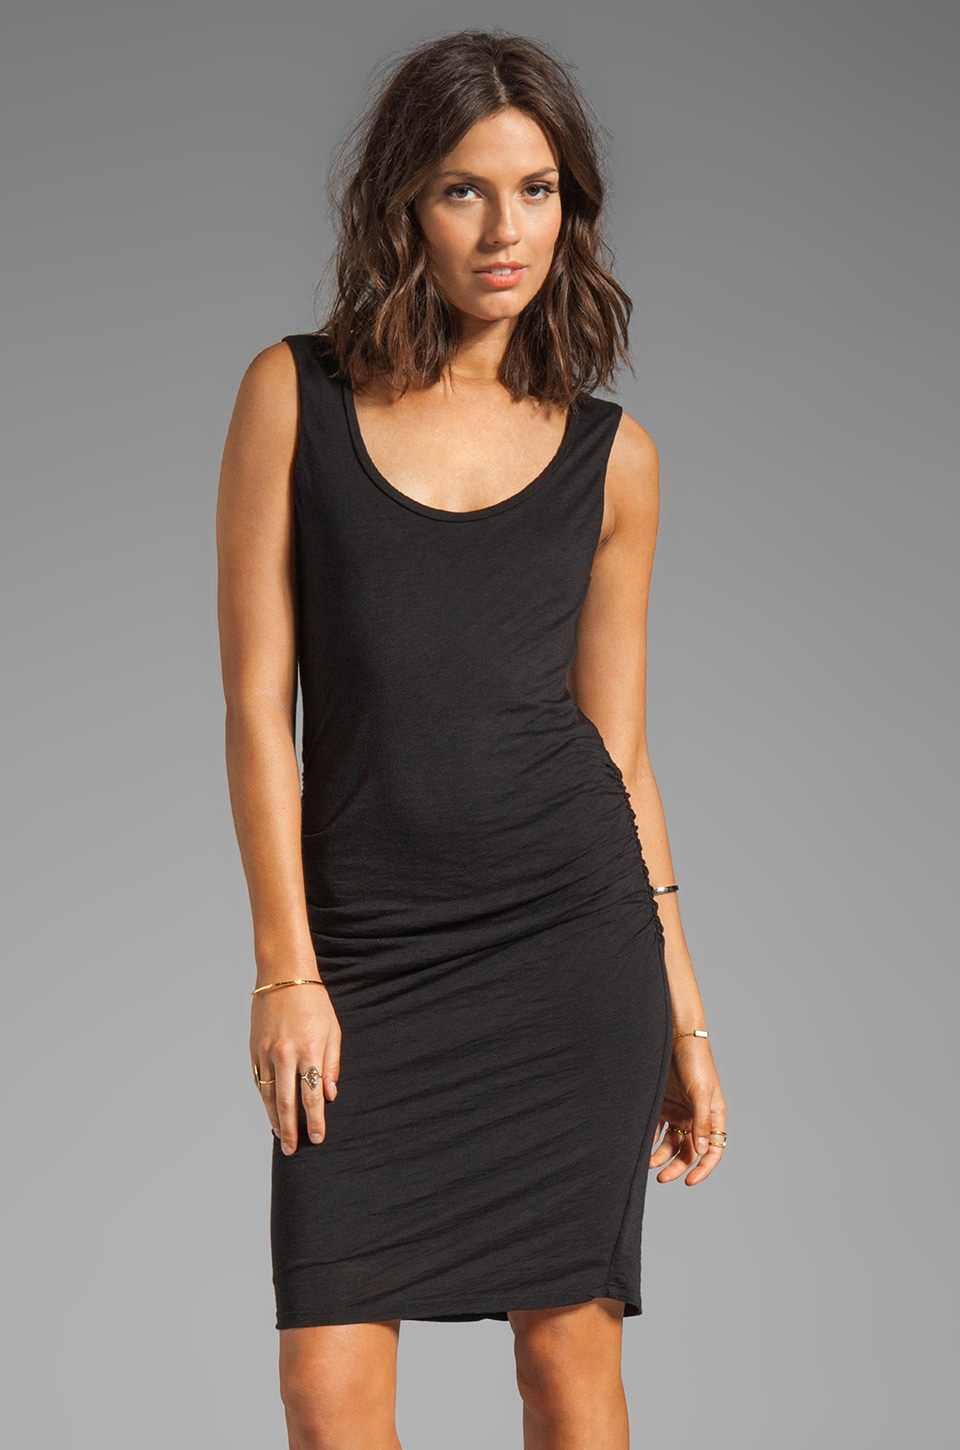 Velvet by Graham & Spencer Eliana Luxe Slub Dress in Black